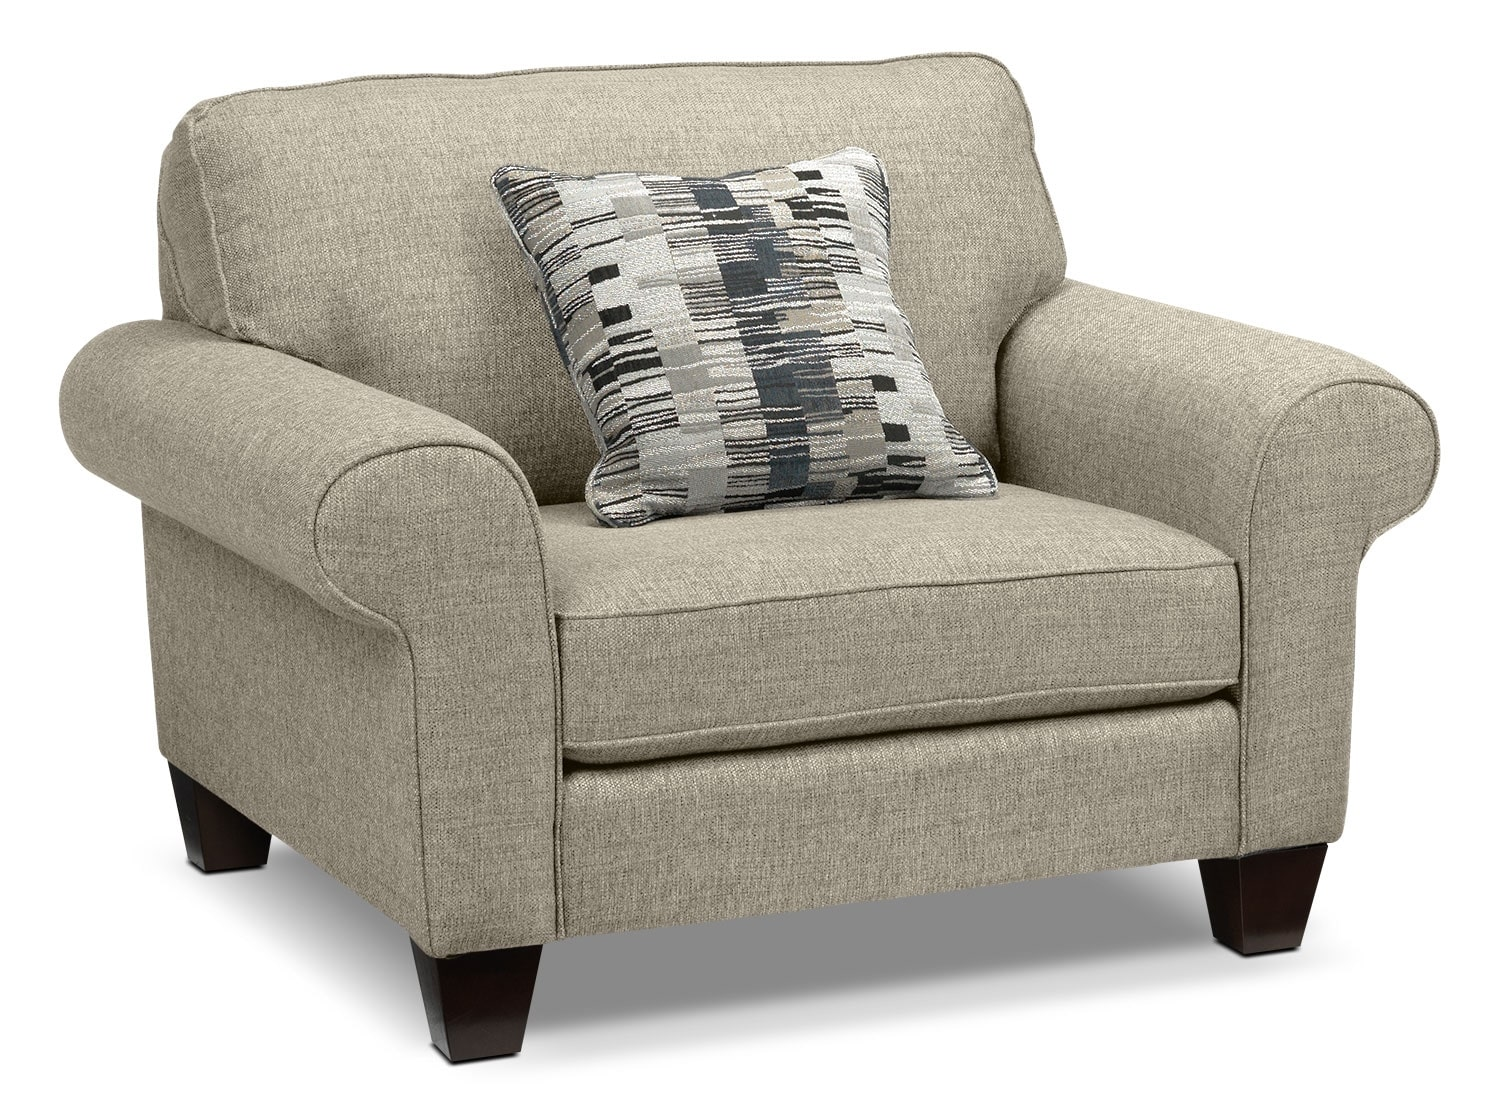 Living Room Furniture - Drake Chair - Taupe